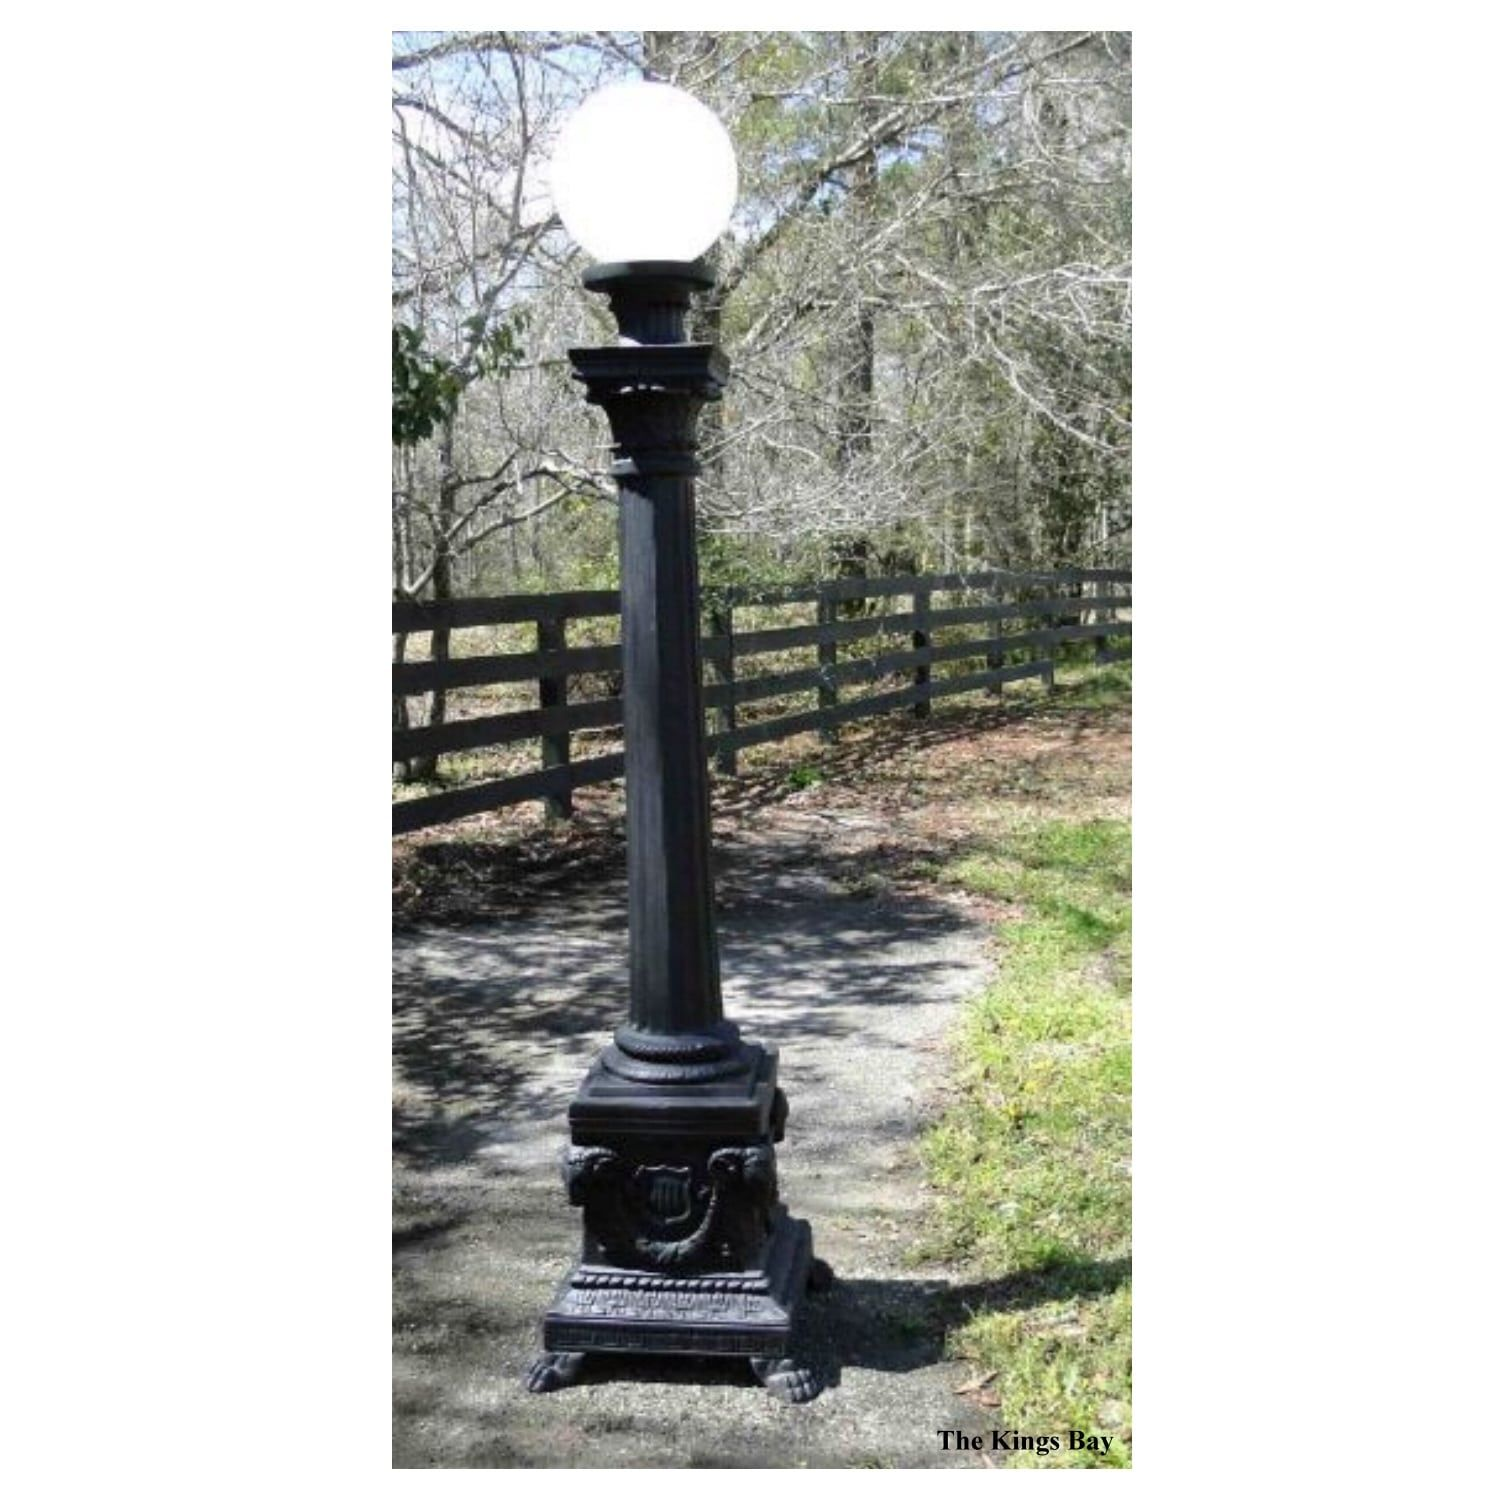 Pair Rams Head Pole Light Commercial Outdoor Presidential Vintage Style 87 Tall Aluminum Paint Victorian Gardens Outdoor Gardens